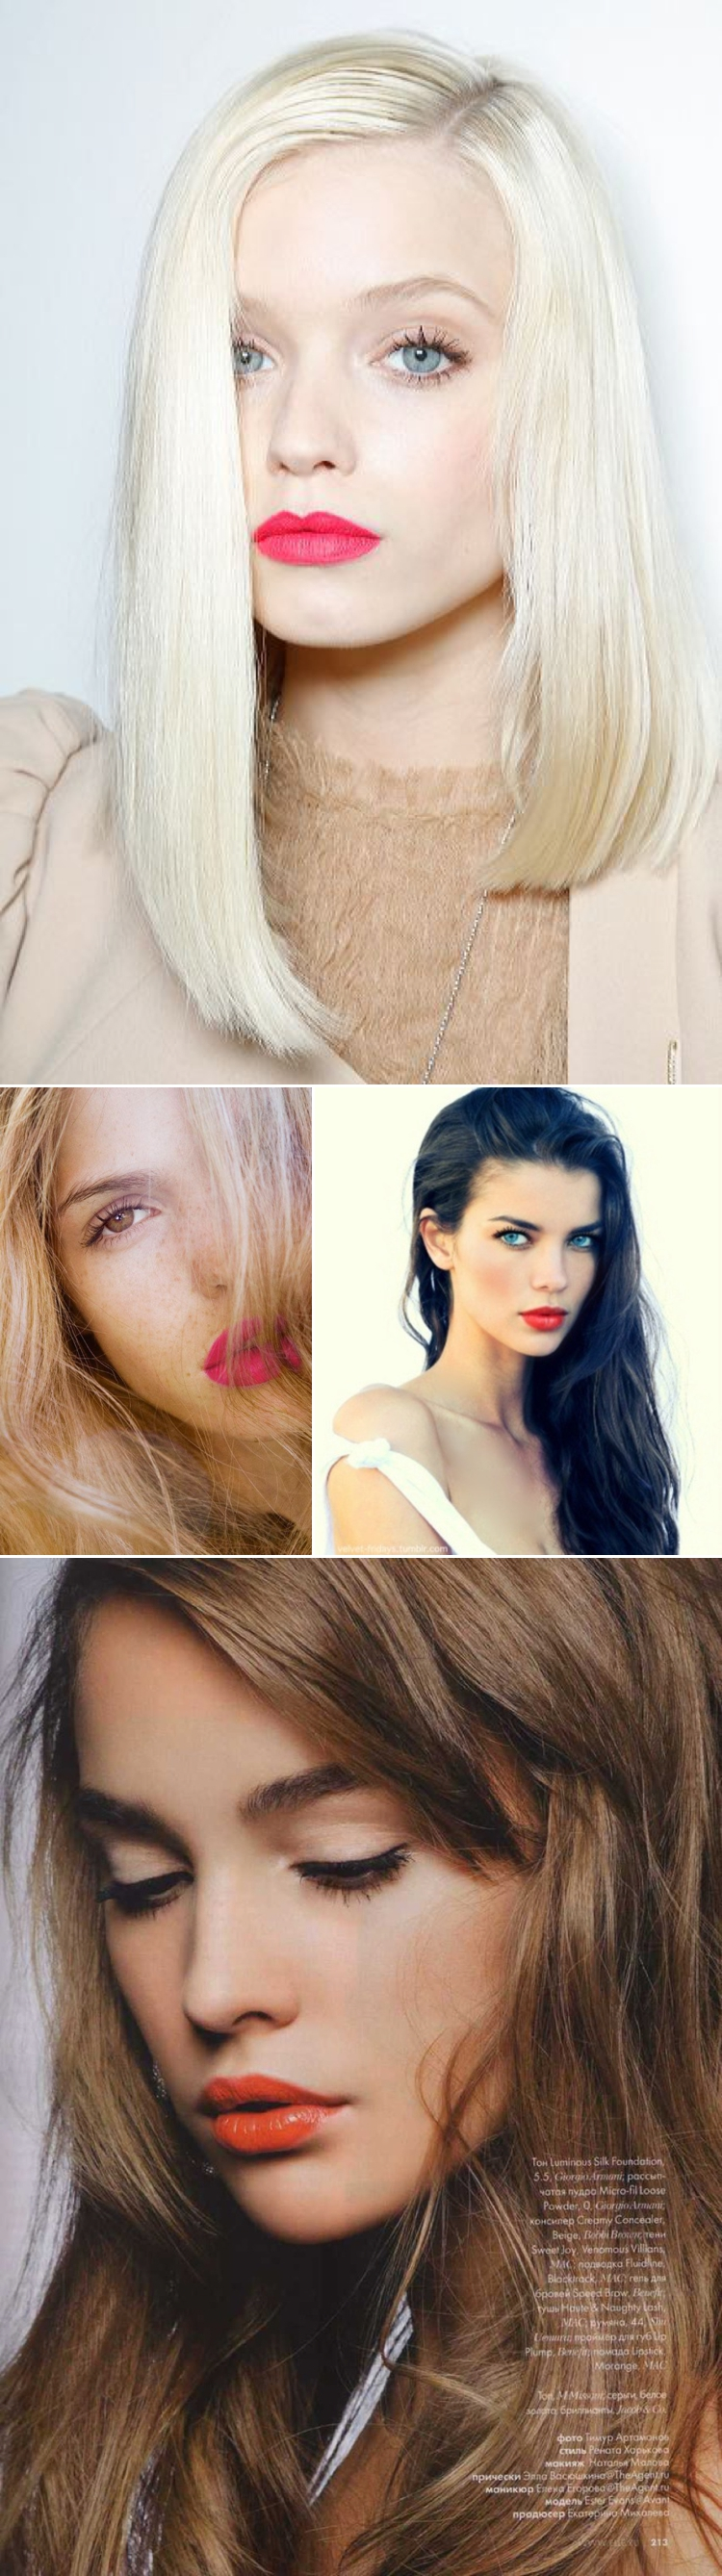 image of 2014 bright lip beauty trend